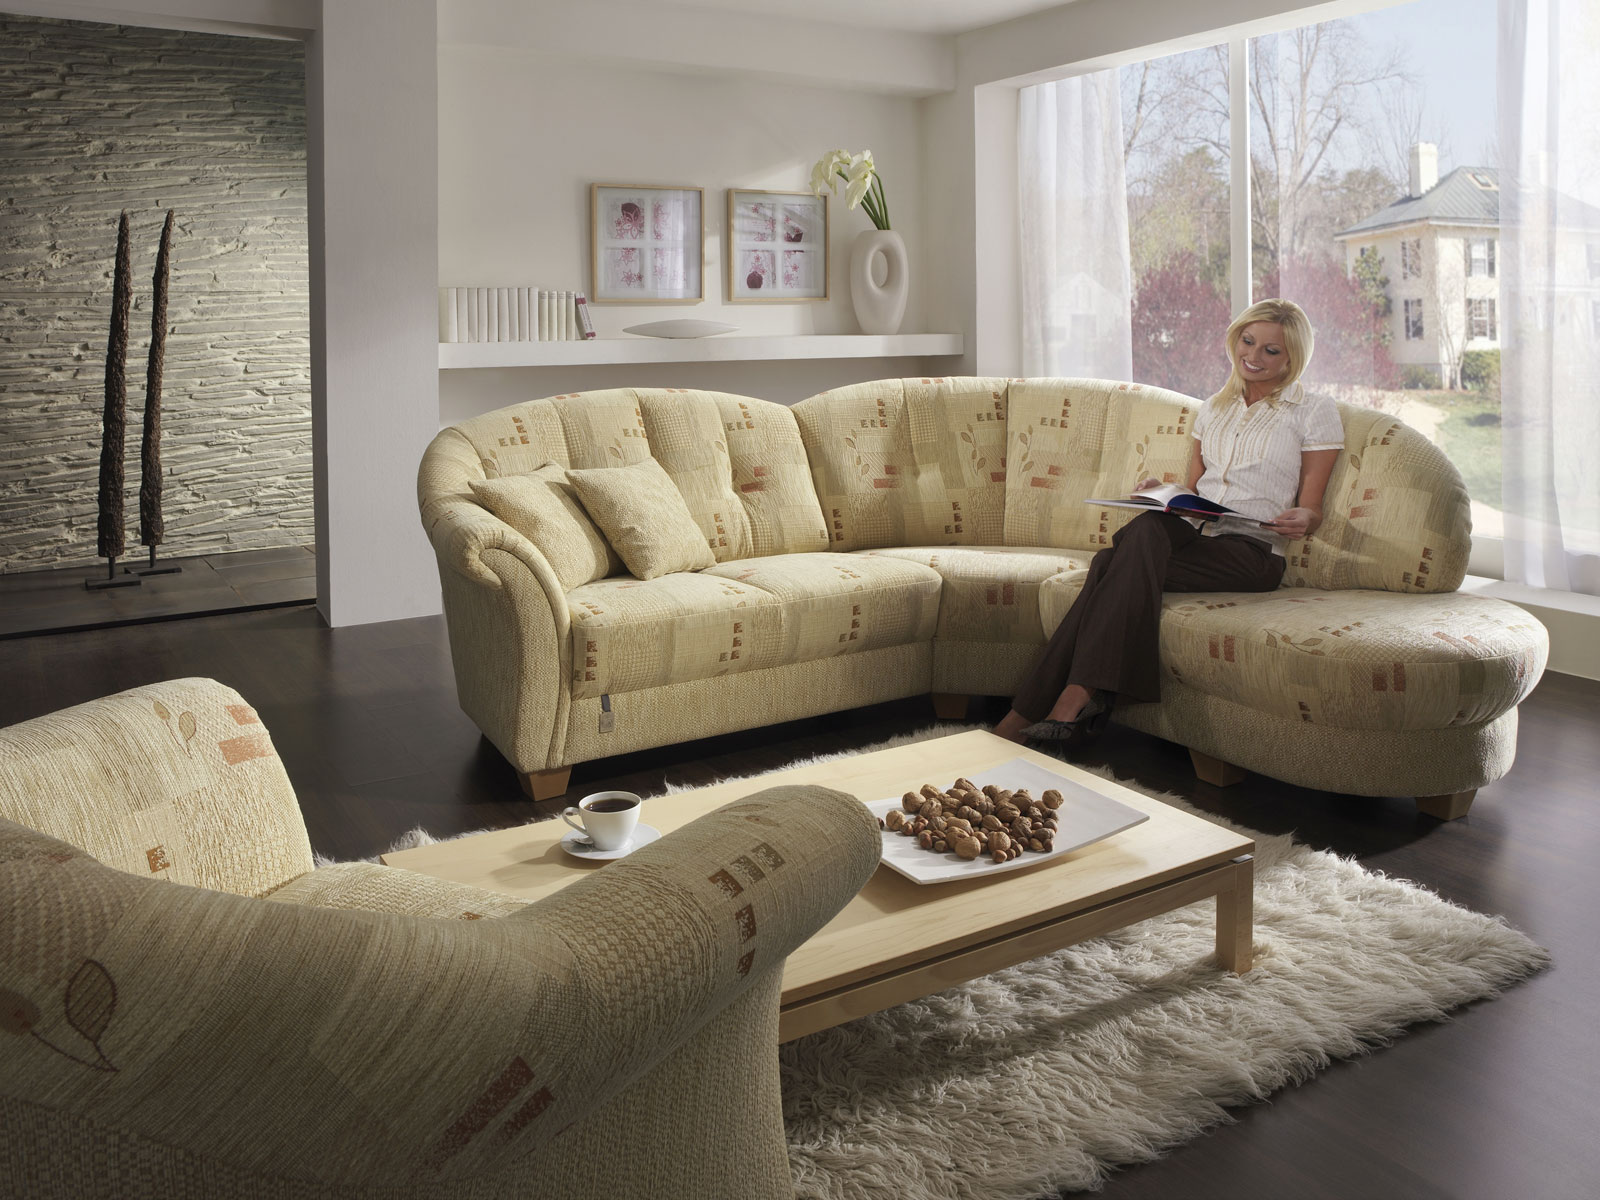 Couchgarnituren Sale Couchgarnituren Sale | Inosign Big-sofa »vale« Mit ...